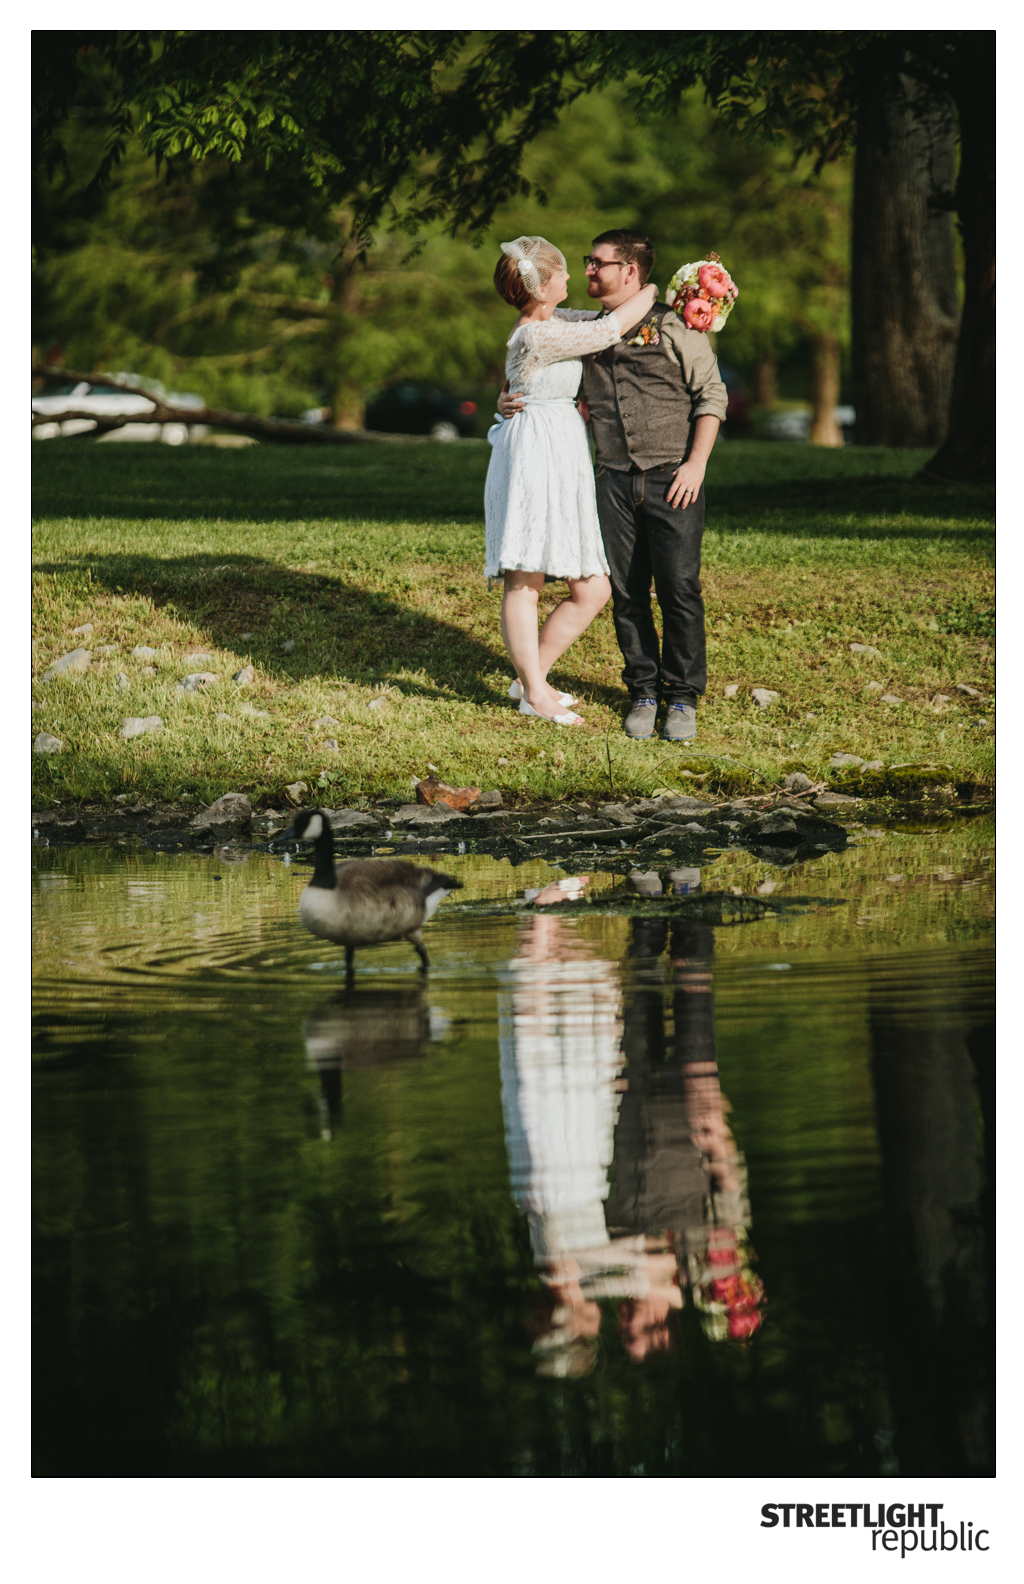 Nashville Wedding Photographer Streetlight Republic, Shelby park Nashville